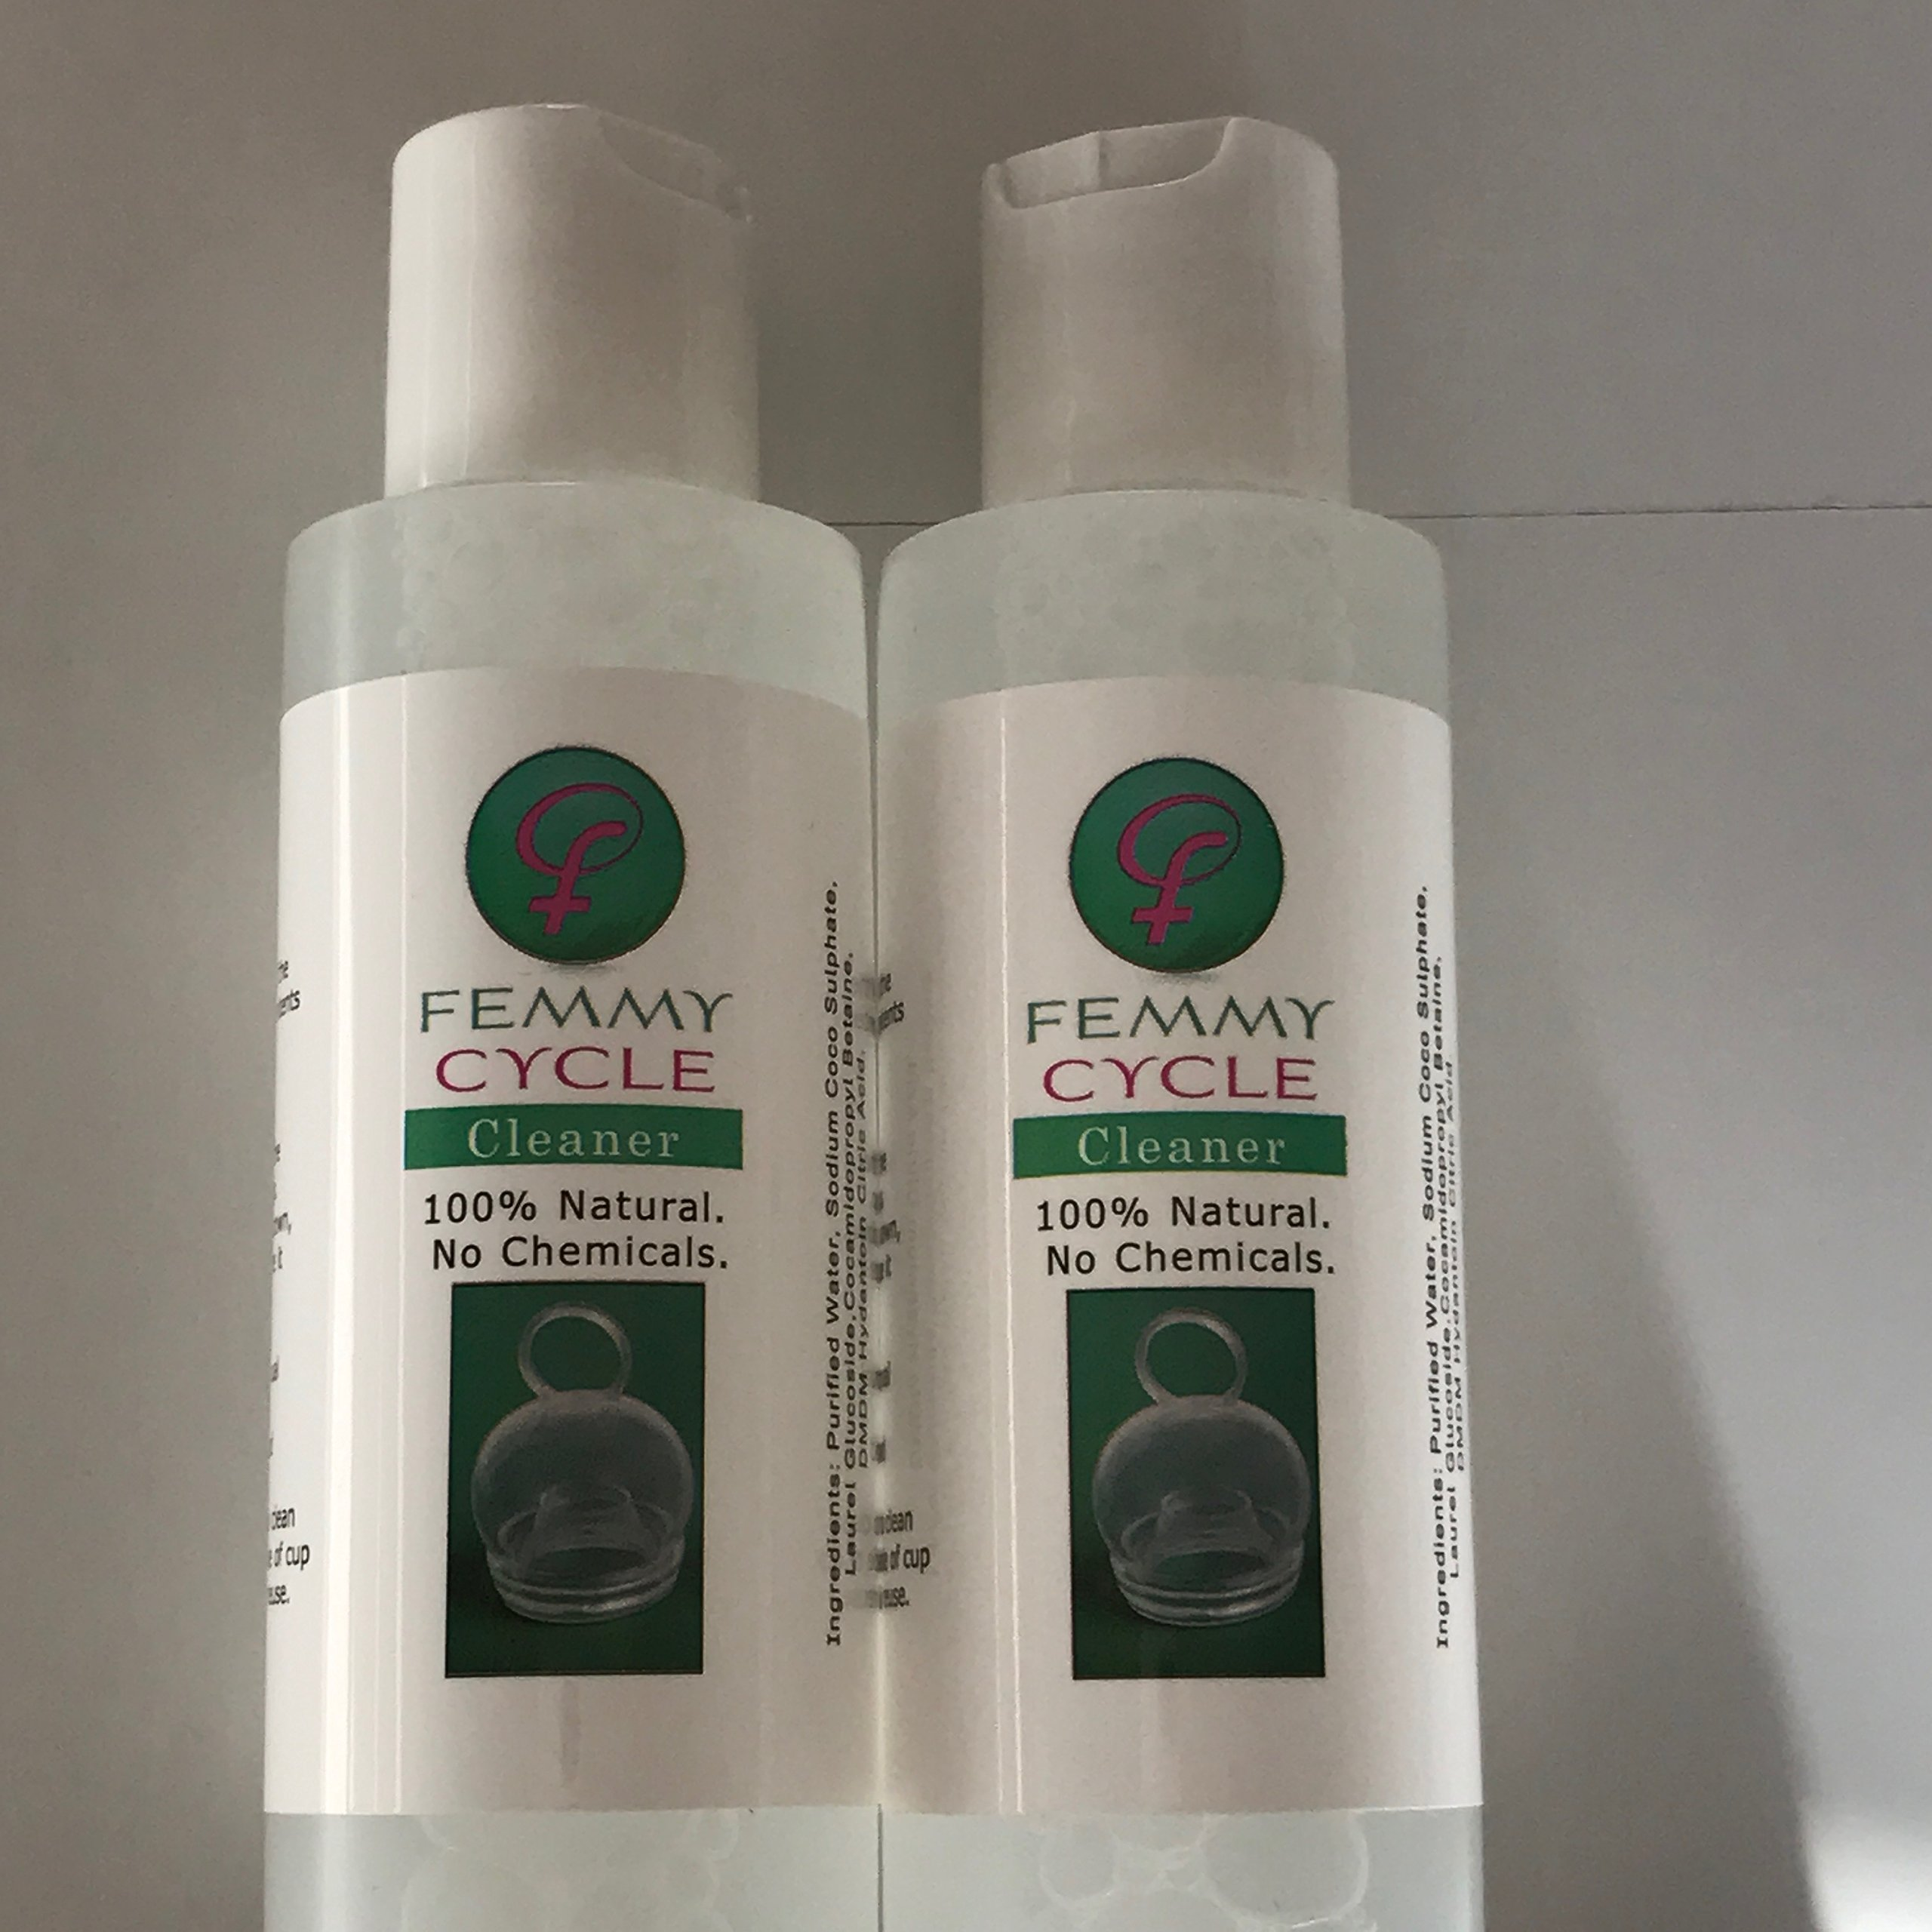 FemmyCycle Cleaner - Double Bottle